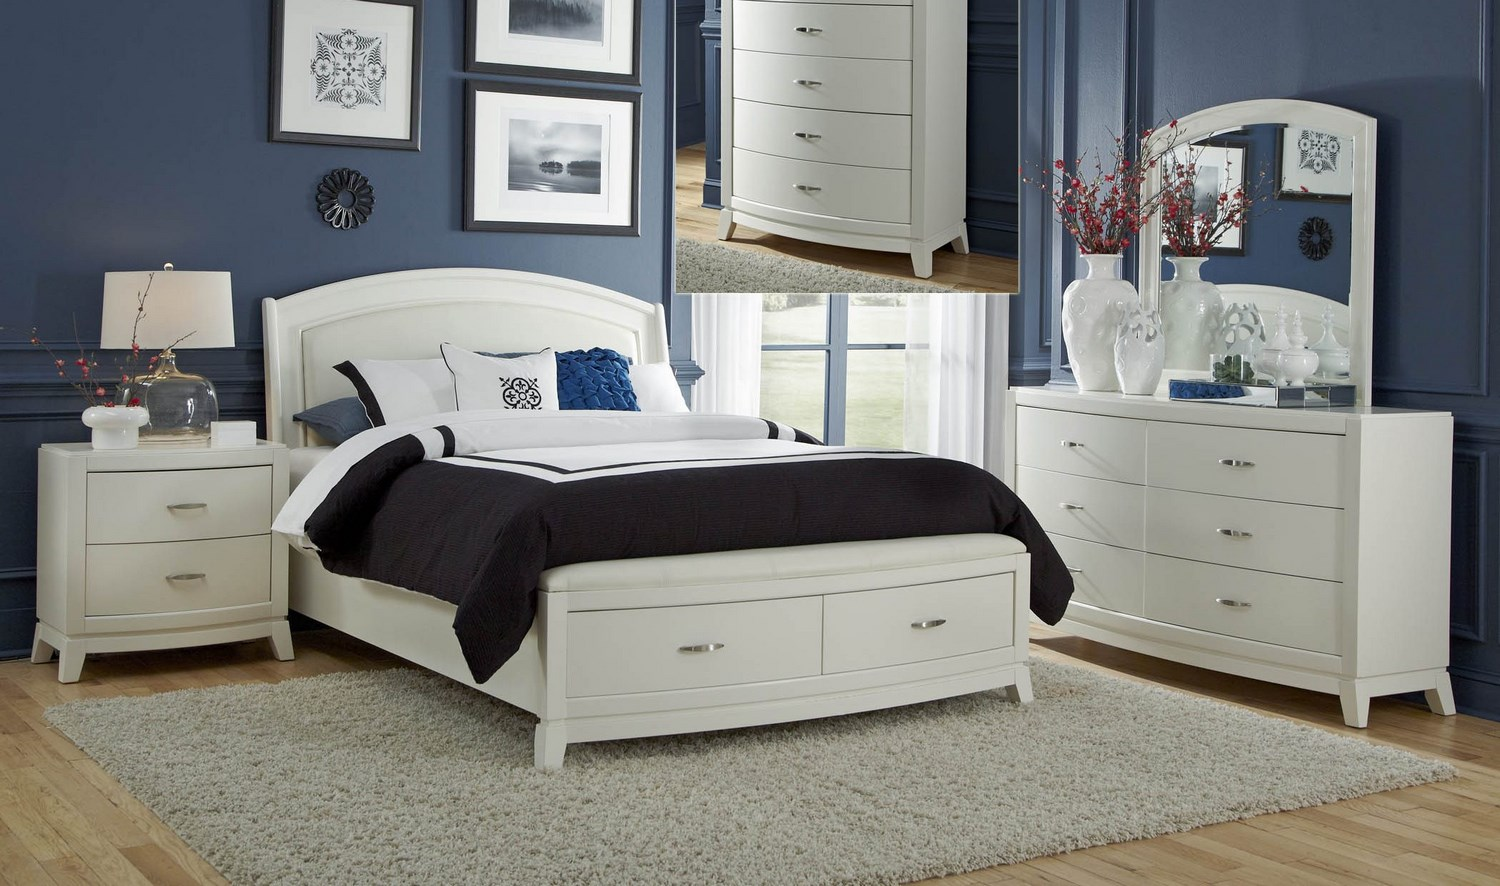 Liberty furniture avalon ii 3 piece storage bedroom set furniture mall llc home decor Home design furniture llc